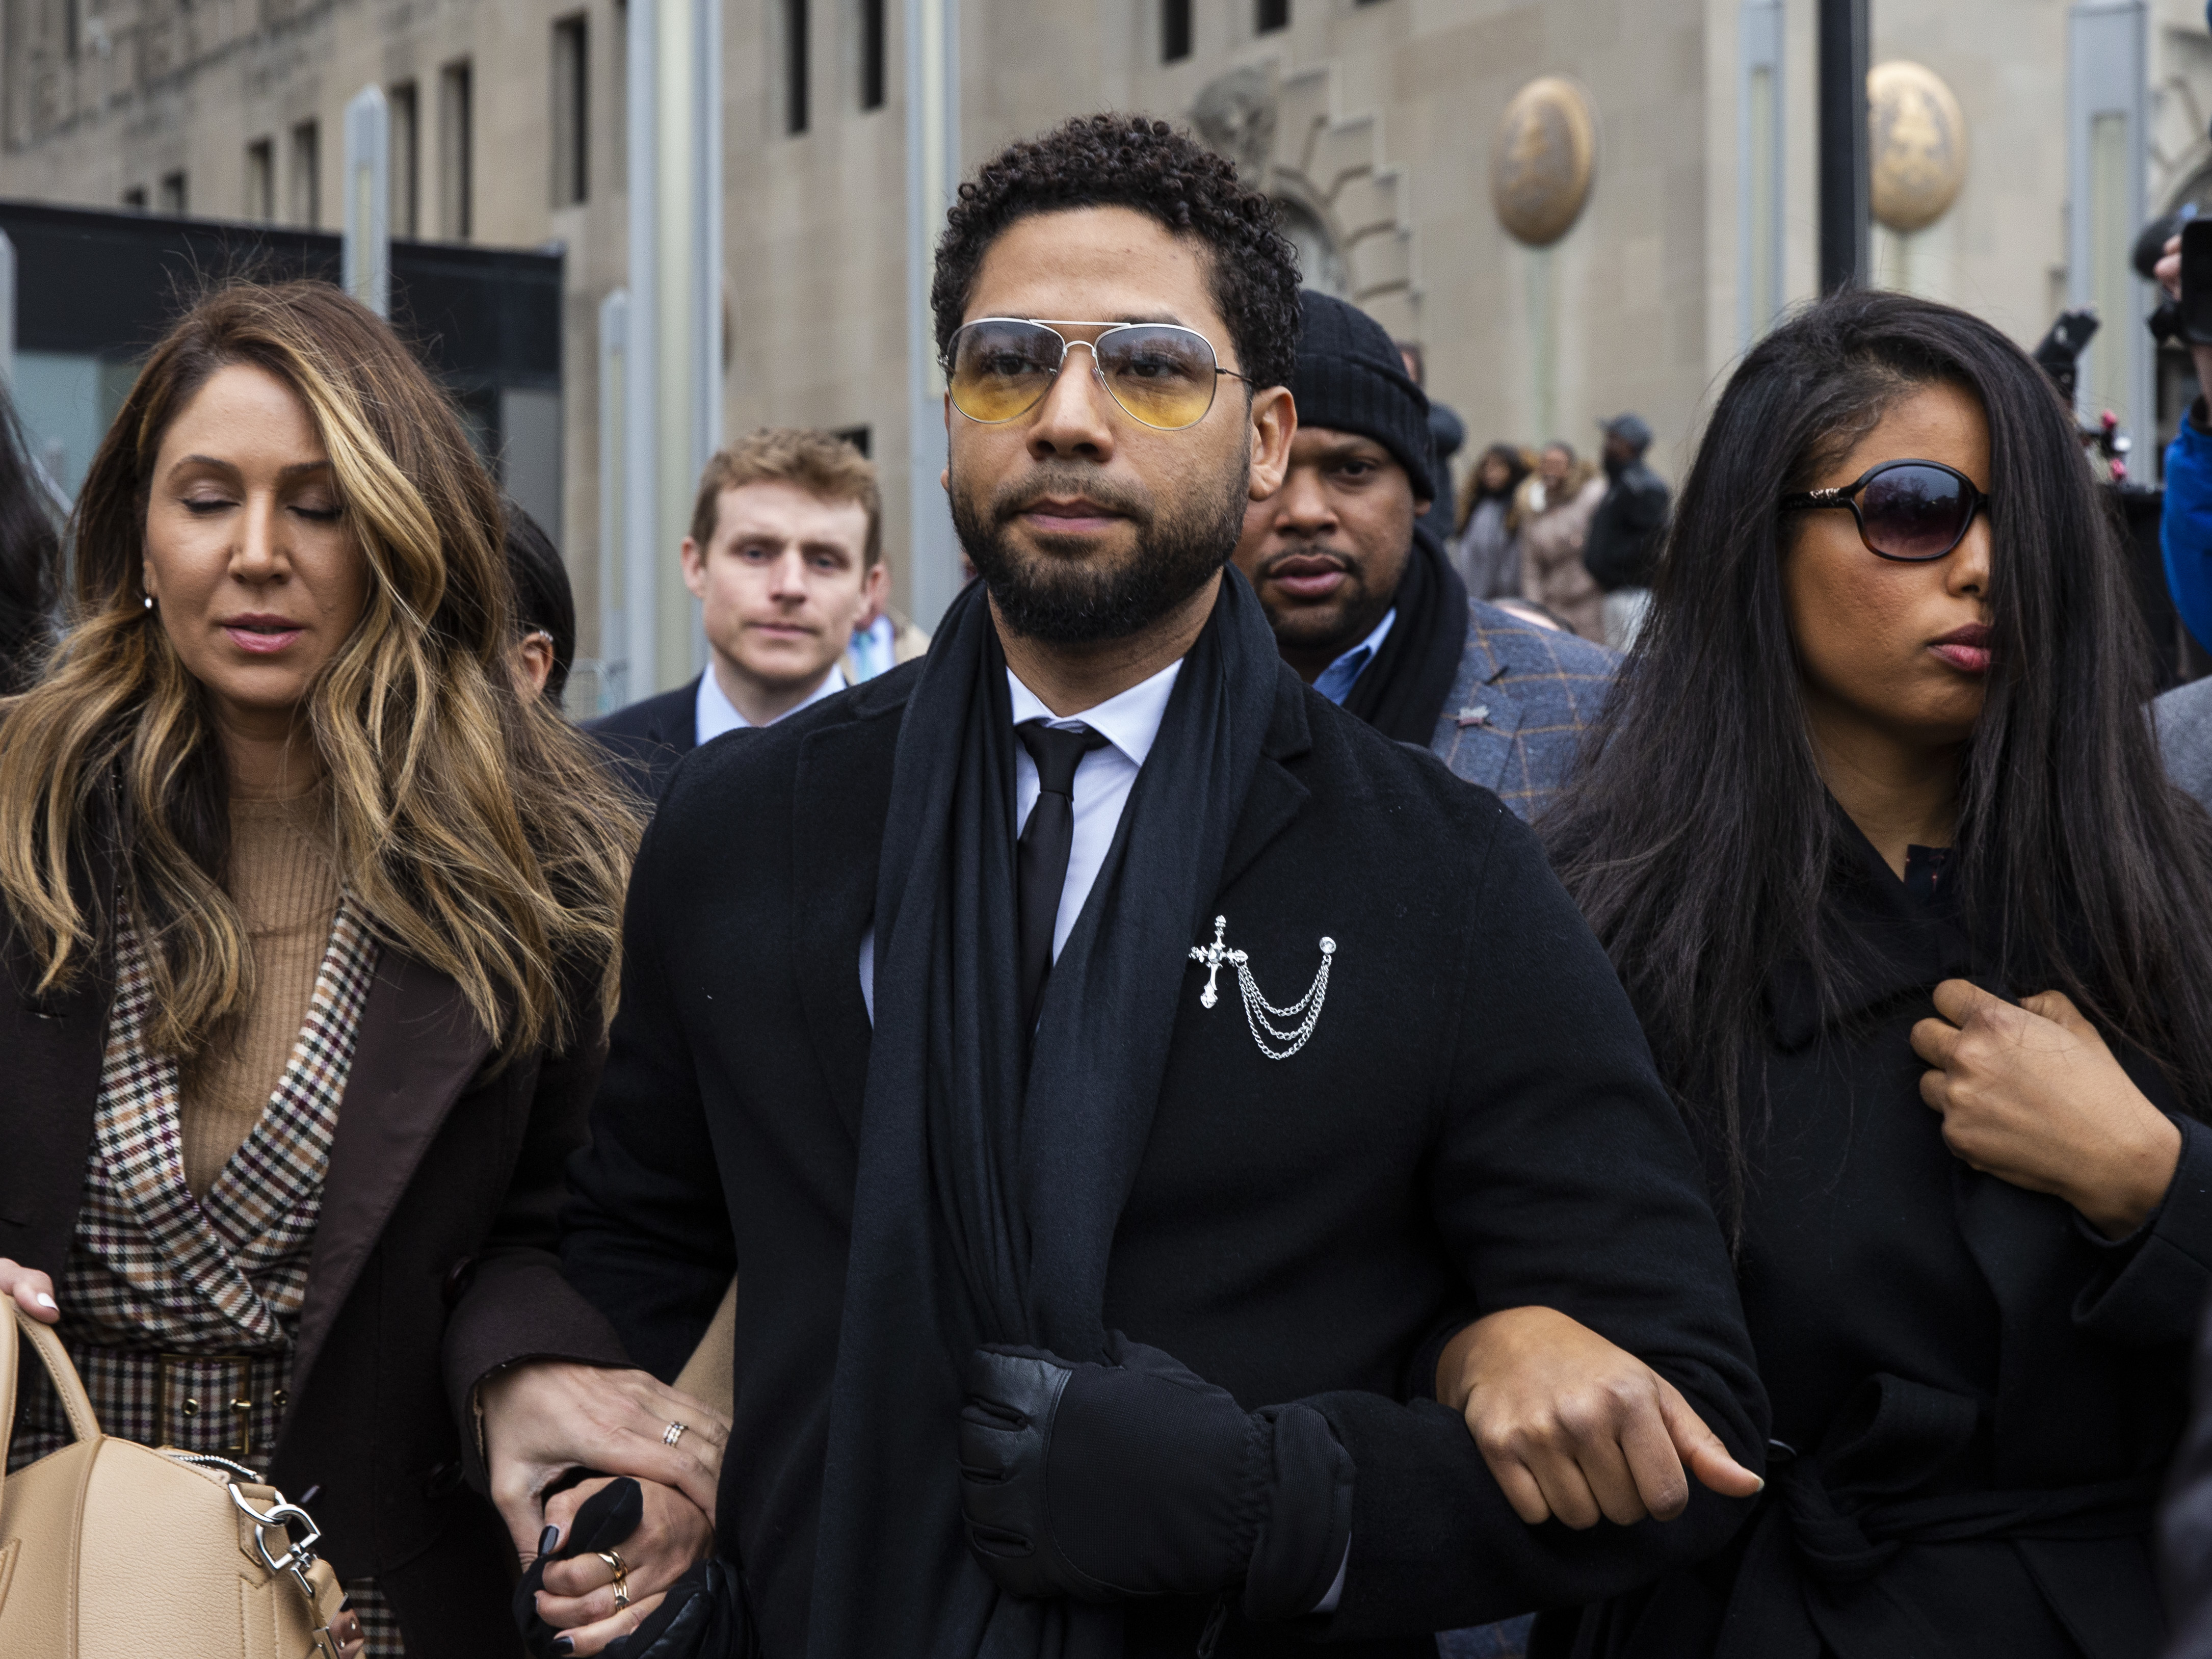 """Flanked by attorneys and supporters, former """"Empire"""" actor Jussie Smollett walks out of the Leighton Criminal Courthouse after pleading not guilty to a new, six-count indictment charging him with falsely reporting he was the victim of a hate-crime attack near his Streeterville apartment in January 2019, Monday morning, Feb. 24, 2020."""